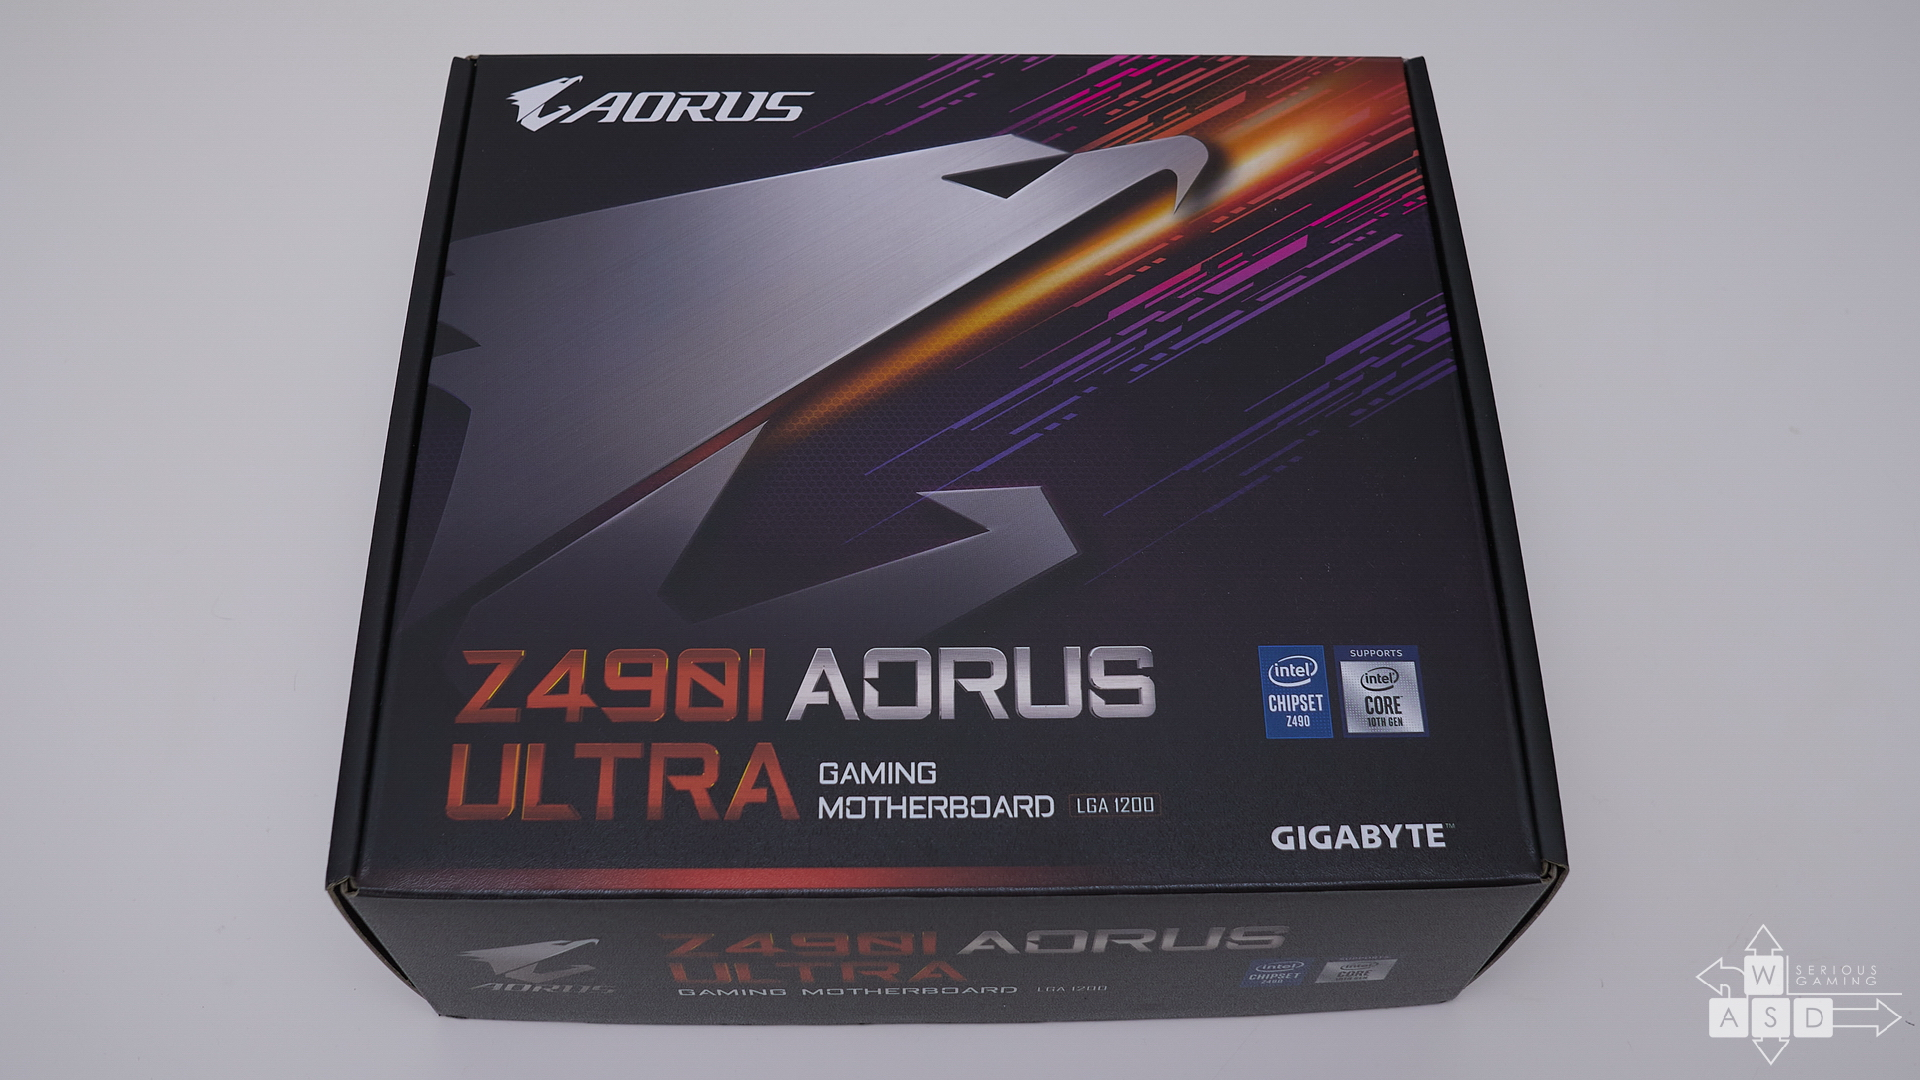 Gigabyte Z490i Aorus Ultra review | WASD